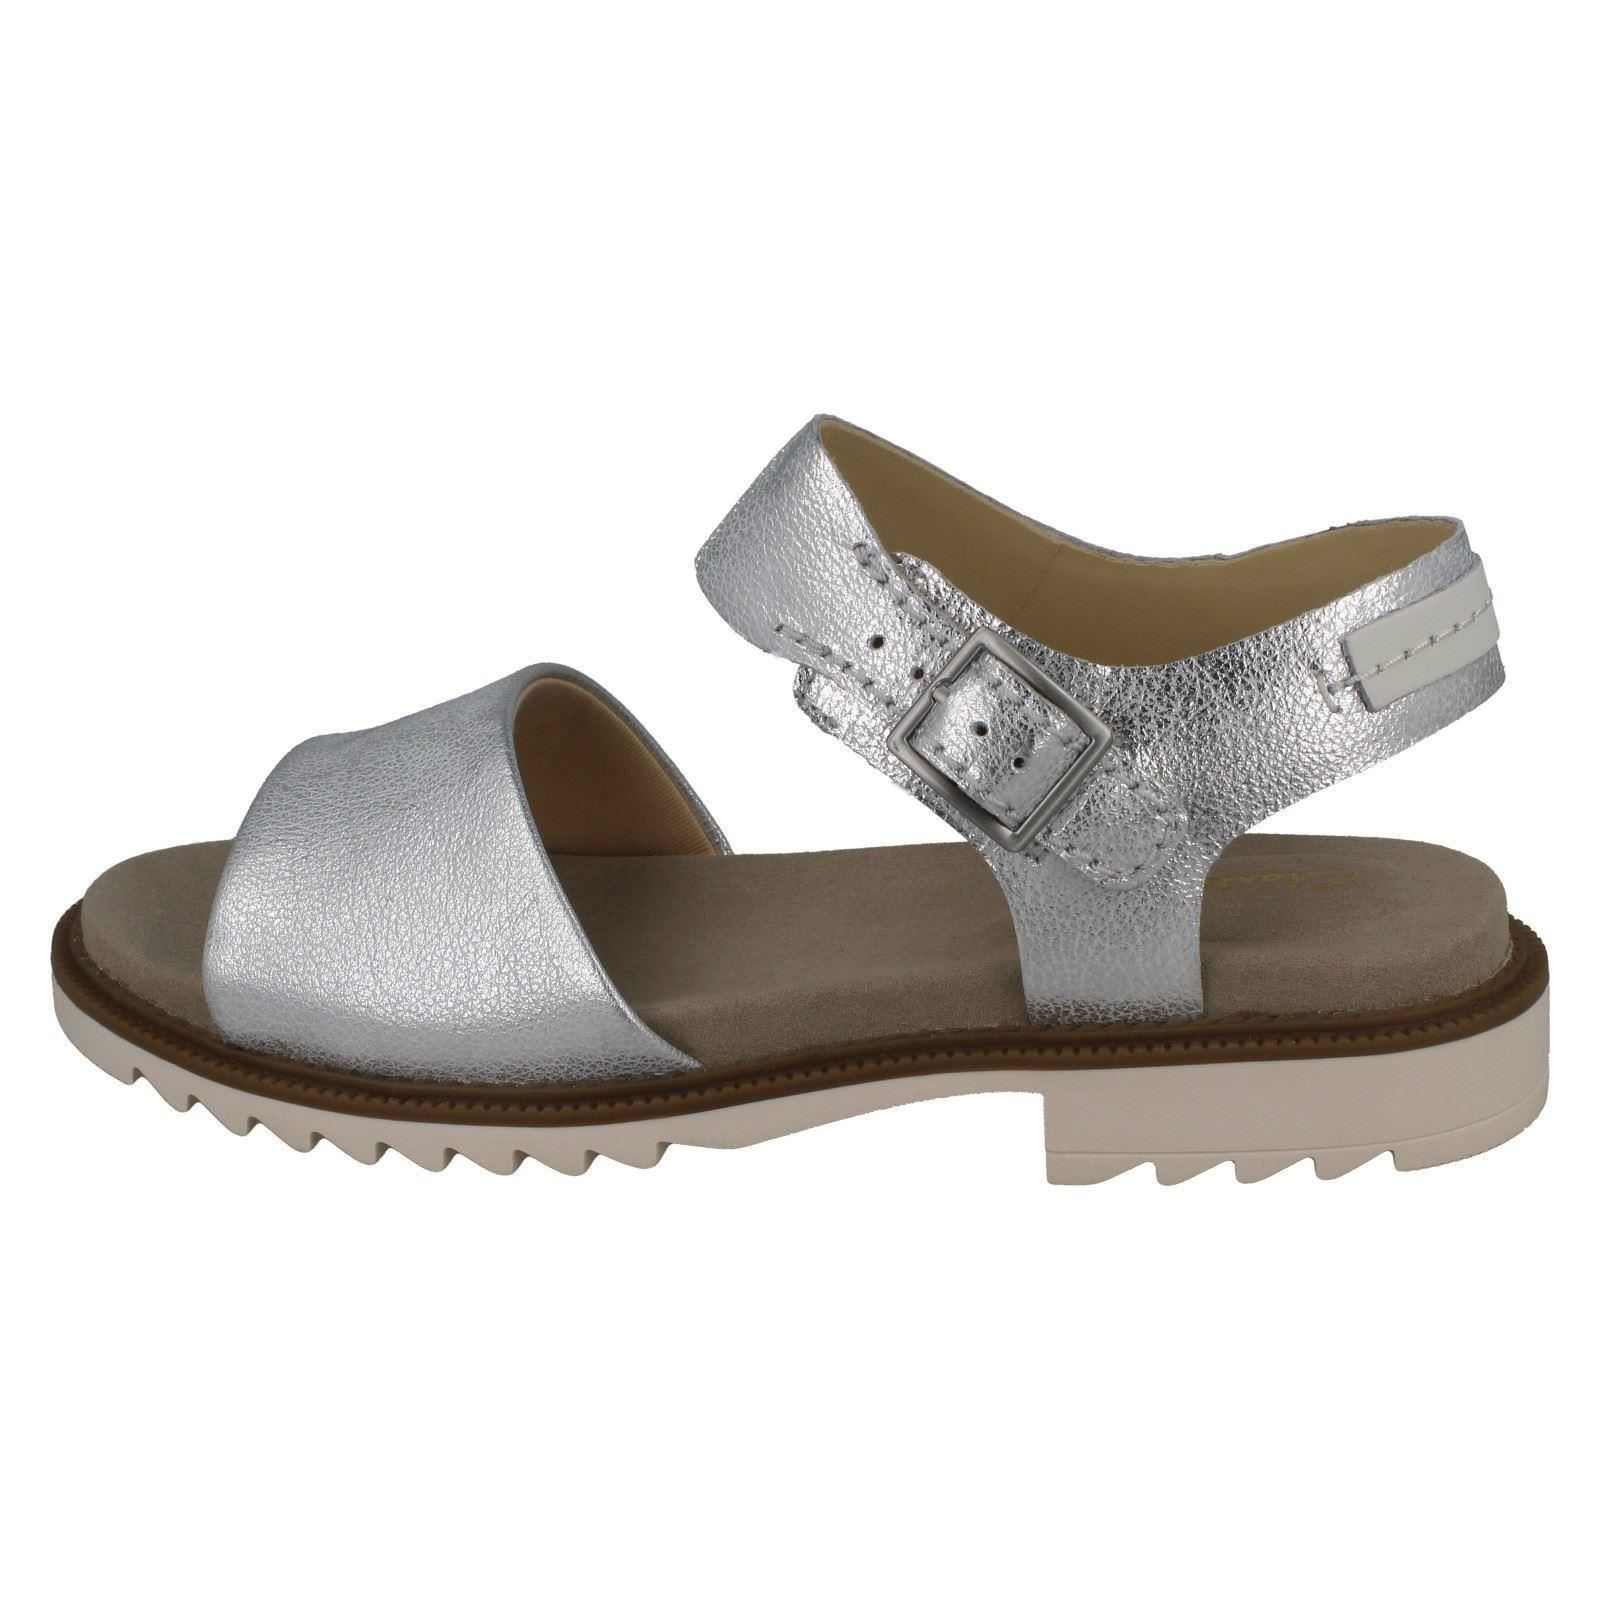 Details about LADIES CLARKS FERNI FAME LEATHER OPEN TOE BUCKLE SMART CASUAL FLAT SUMMER SANDAL